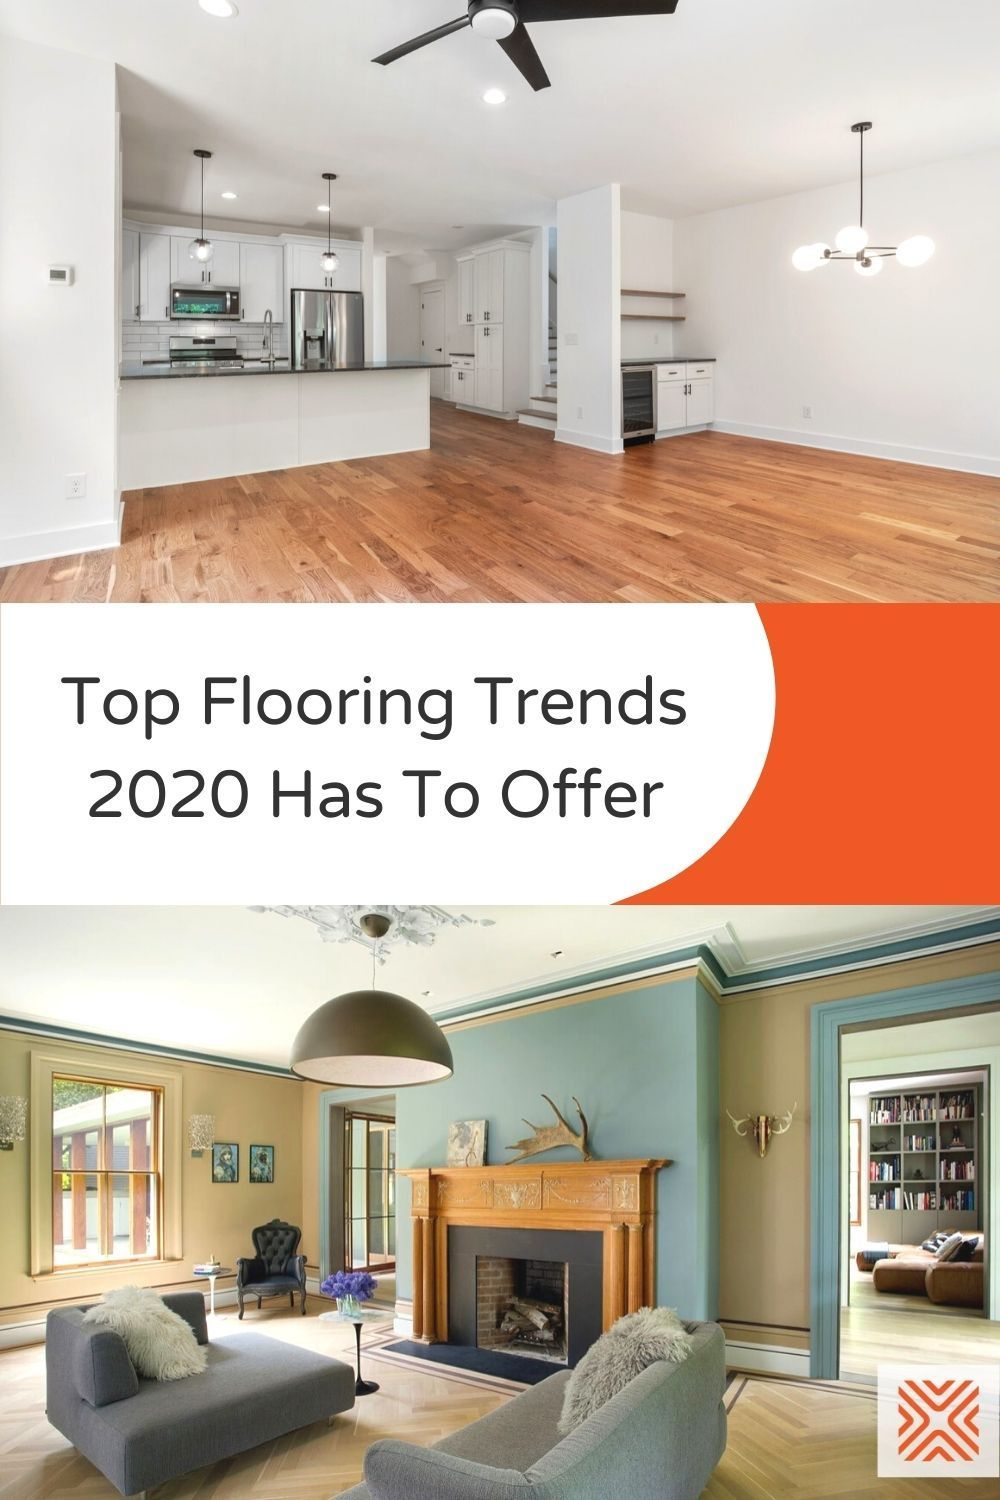 When it comes to flooring, homeowners truly have a wealth of materials to choose from. No matter the decor style, it's easier than ever before to find a flooring option for every taste and budget. So check out these trending flooring ideas for 2020.